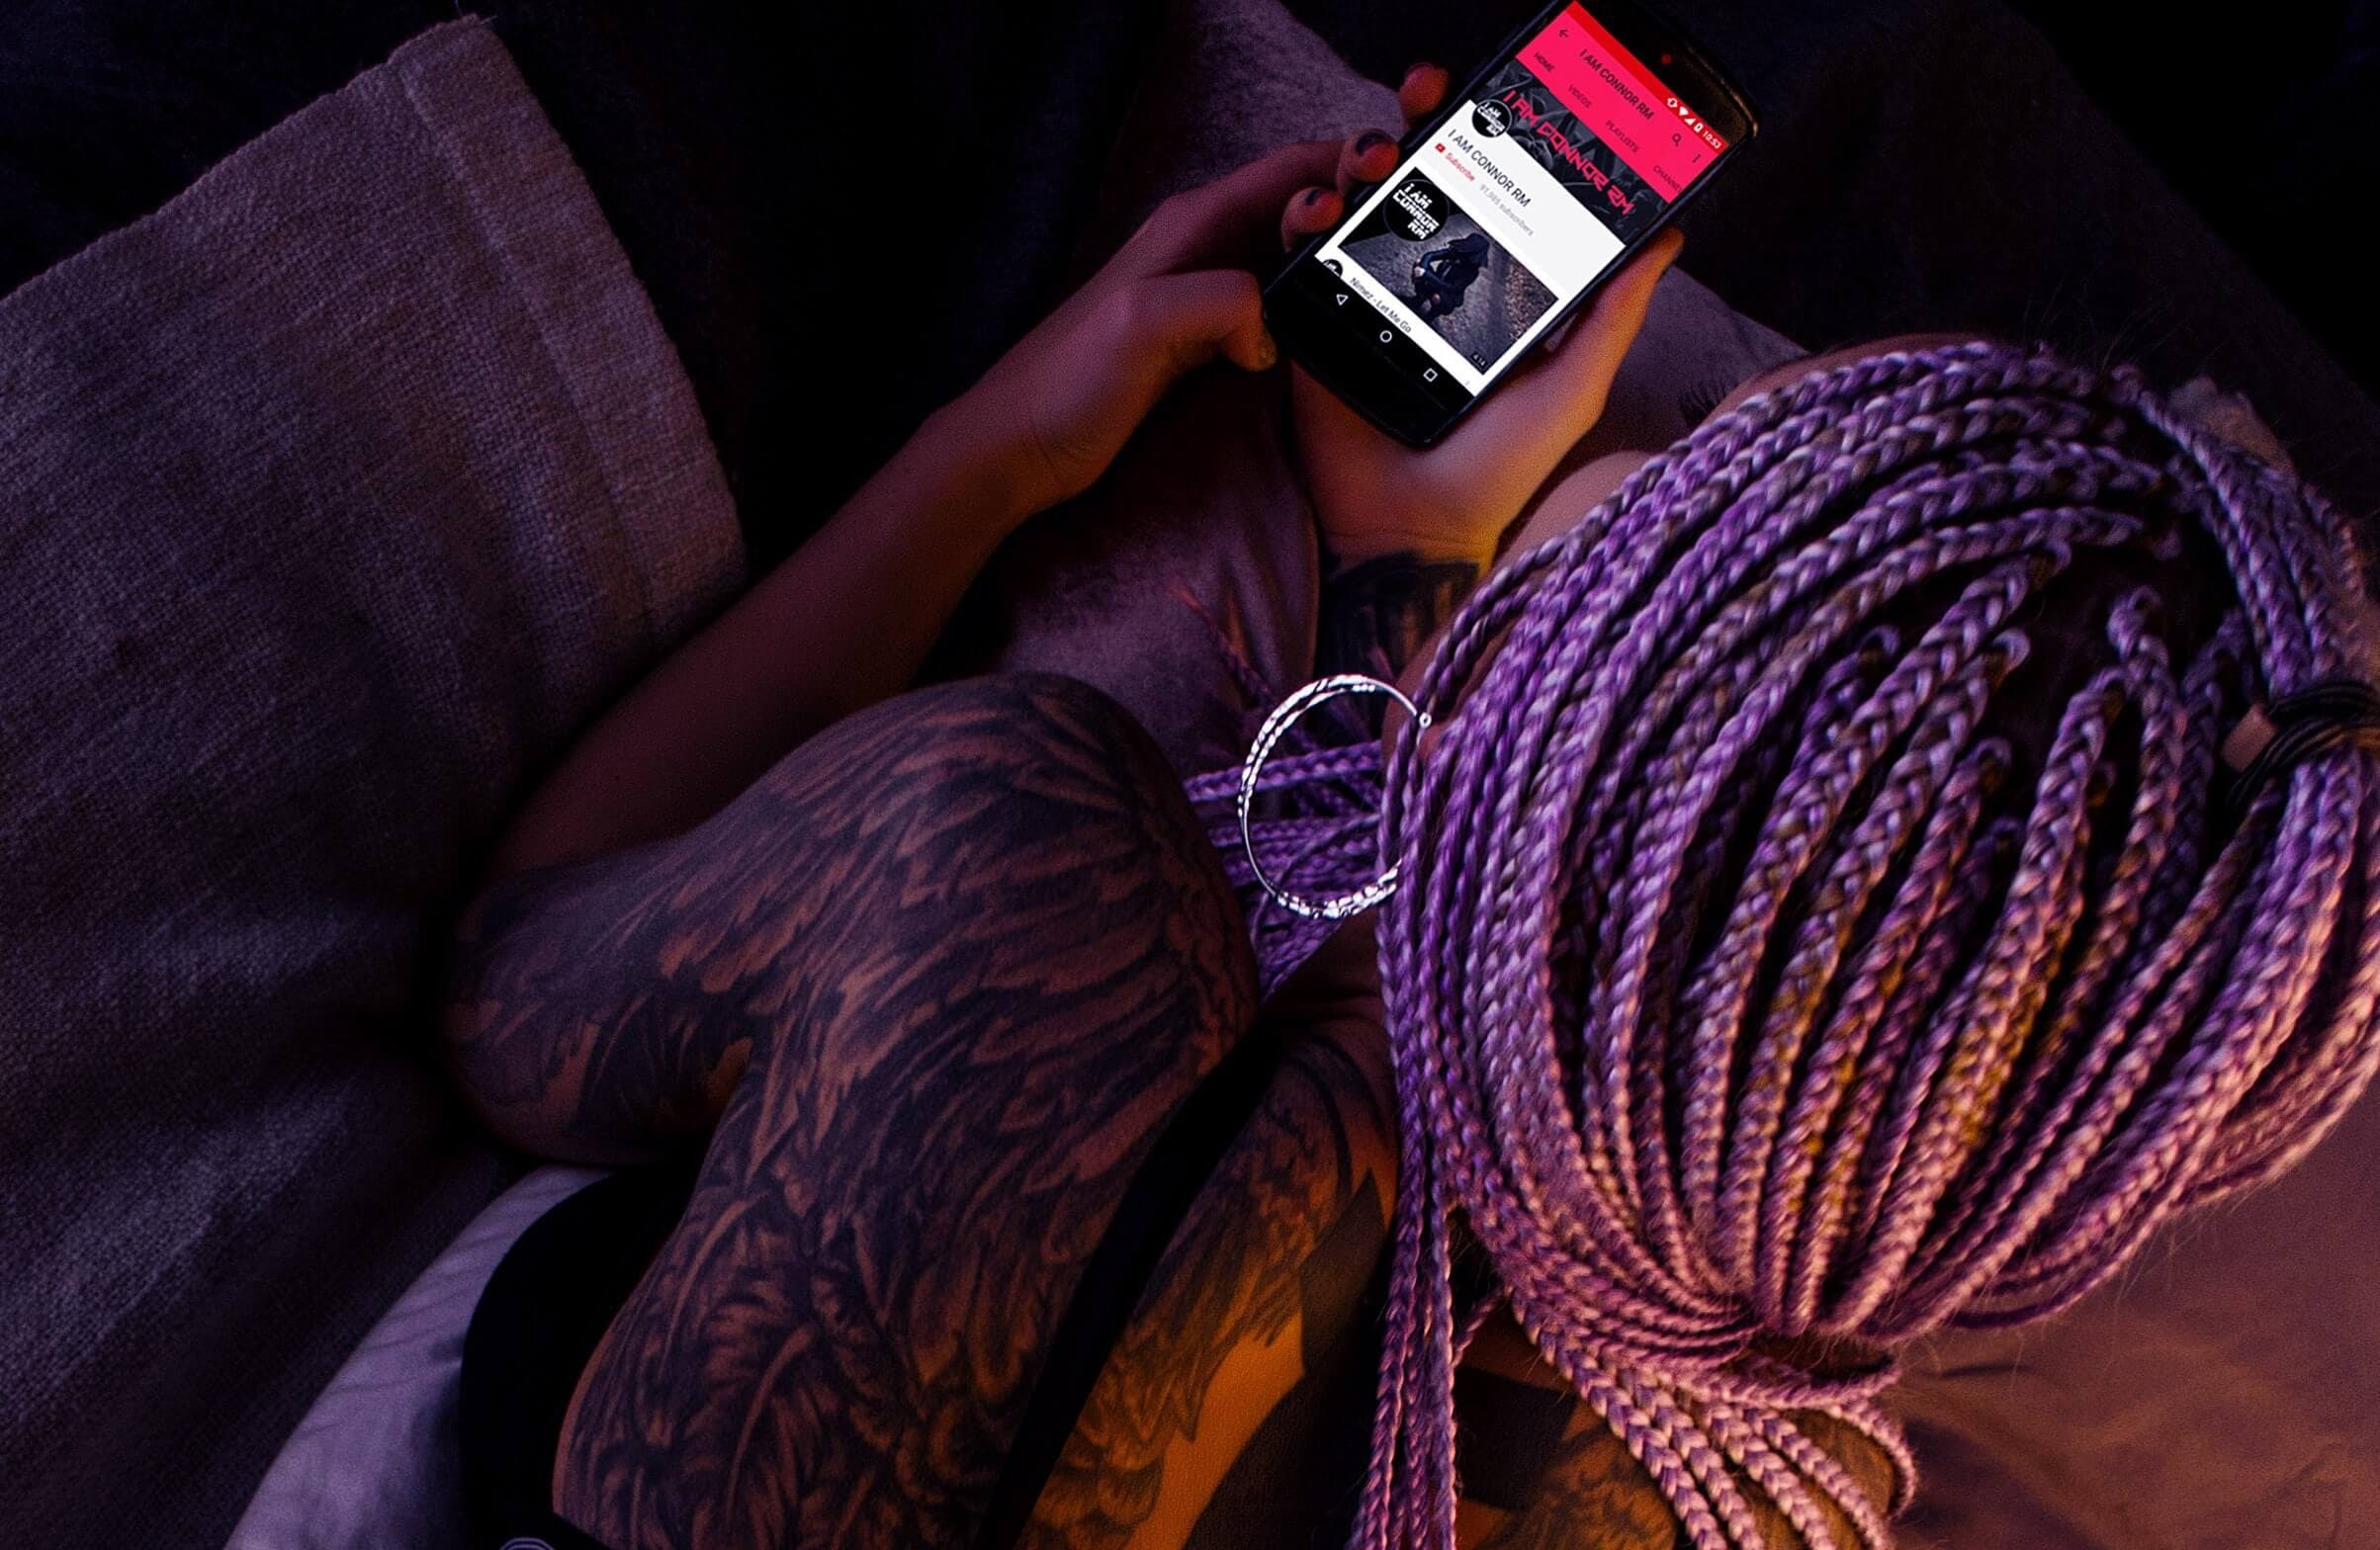 Woman with Purple Braided Hair Holding an Android Smartphone